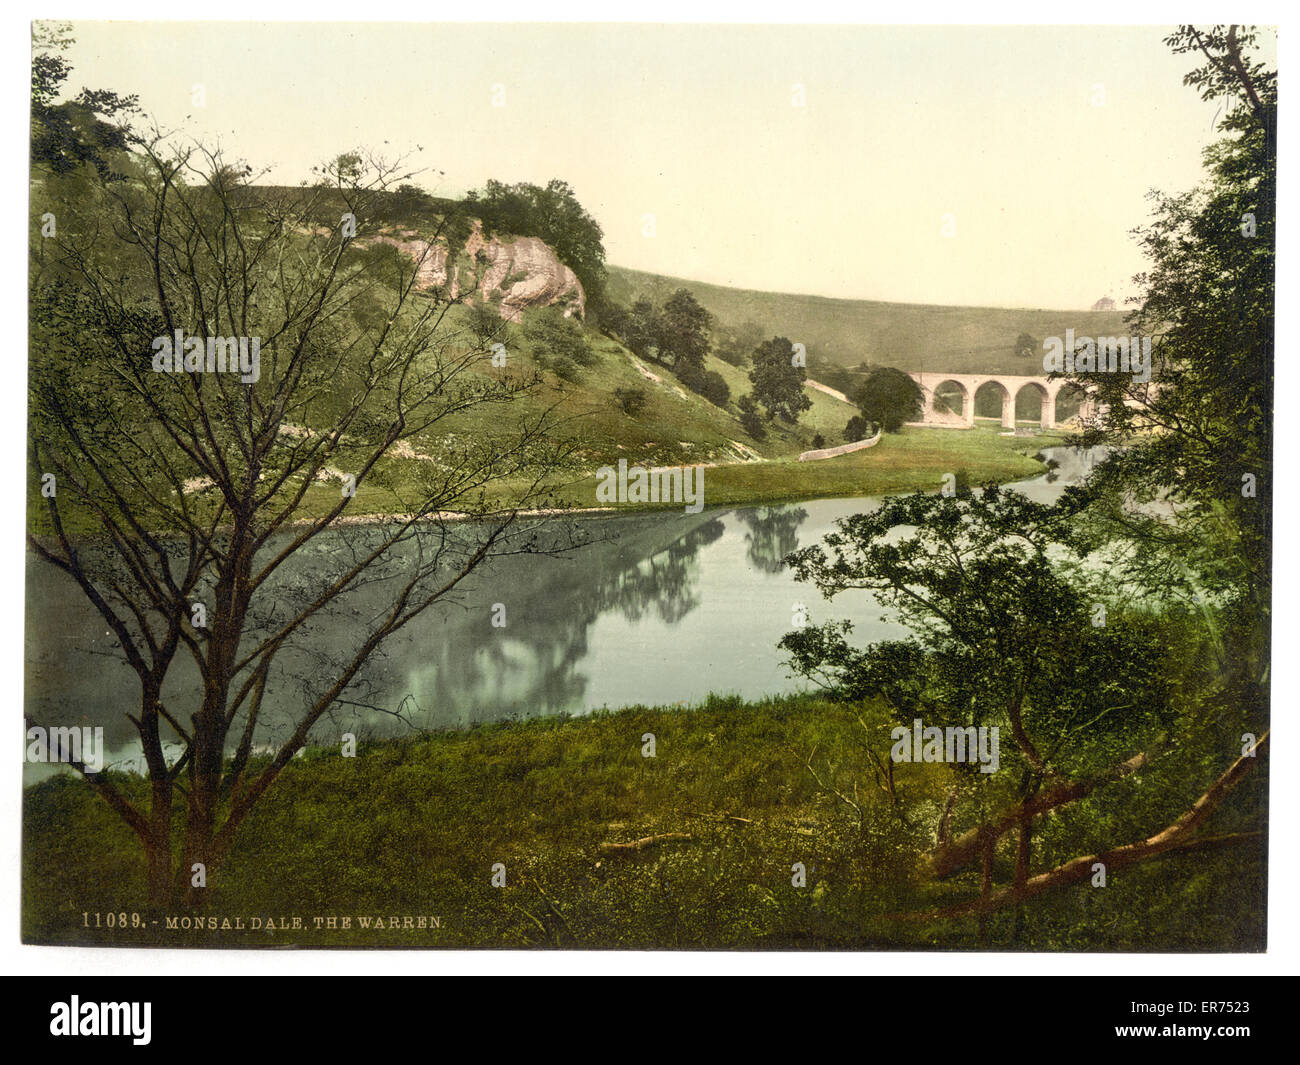 Monsal Dale, the Warren, Derbyshire, England. Date between ca. 1890 and ca. 1900. - Stock Image